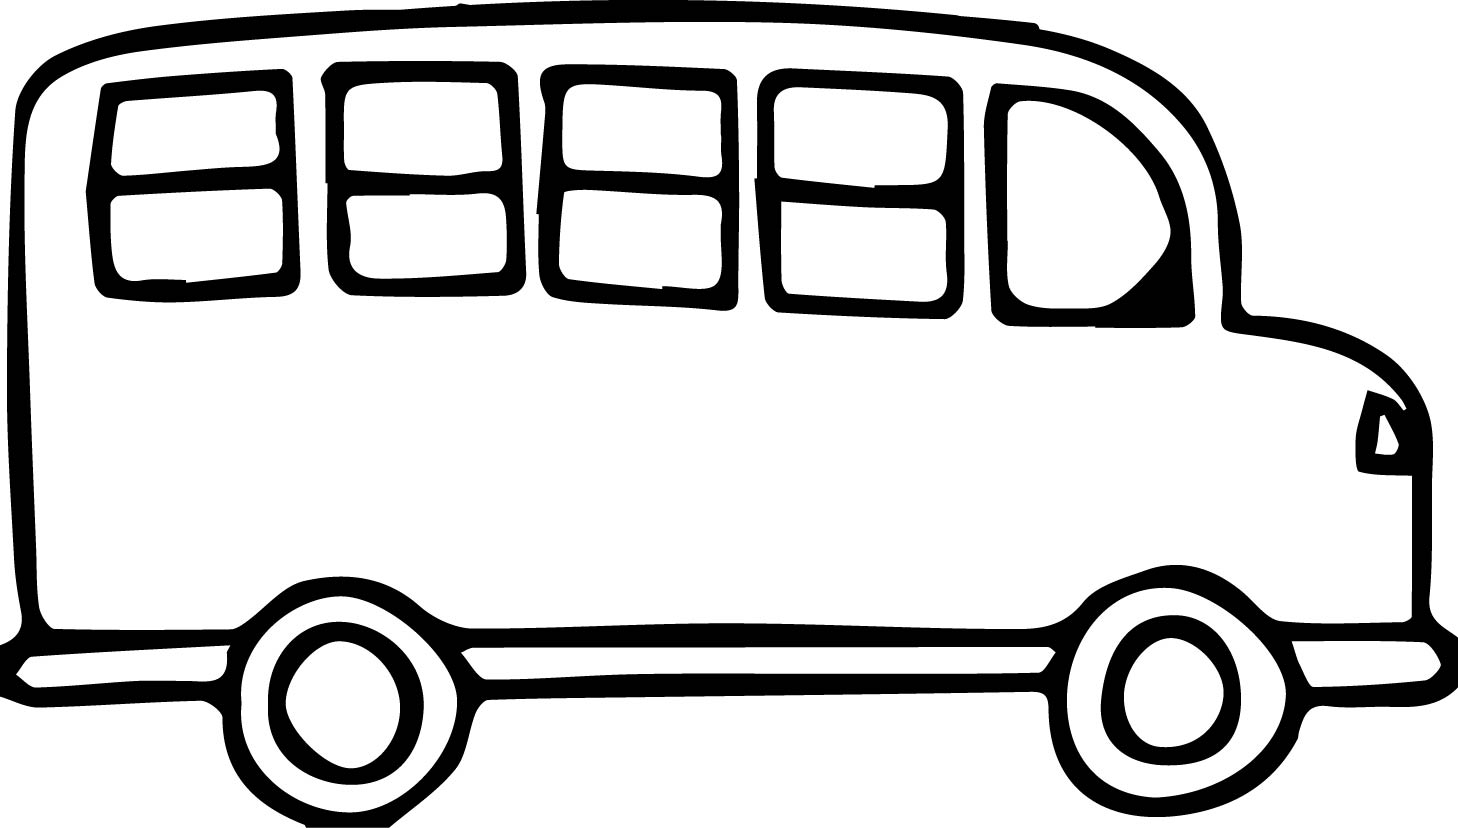 Clipart of a bus black and white library Bus Black And White Clipart | Free download best Bus Black And White ... library